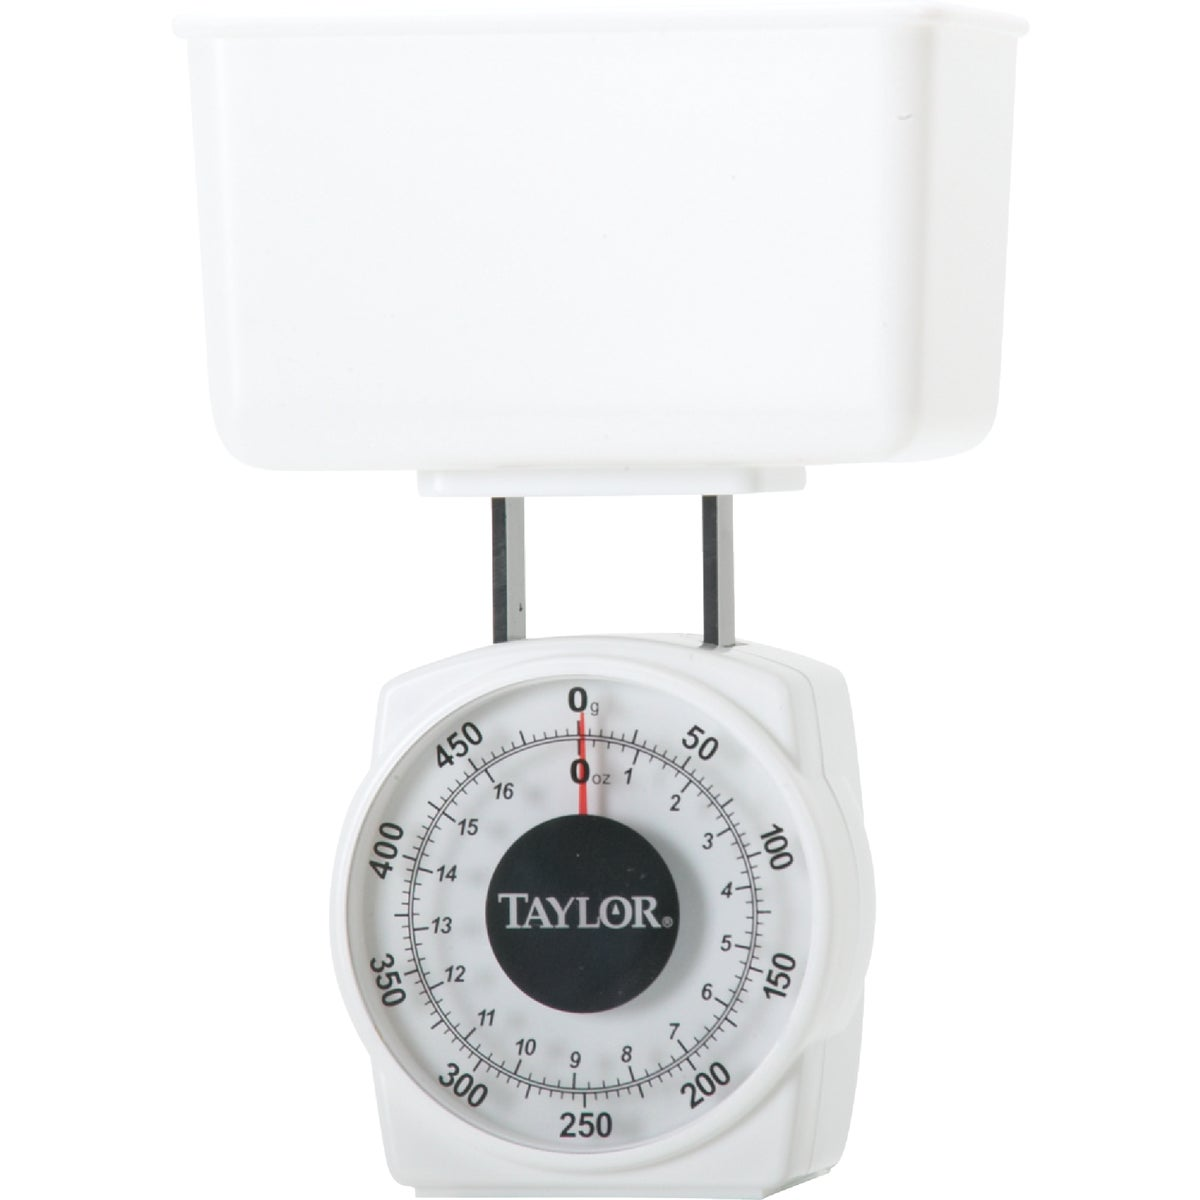 1LB FOOD SCALE - 37204014T by Taylor Precision